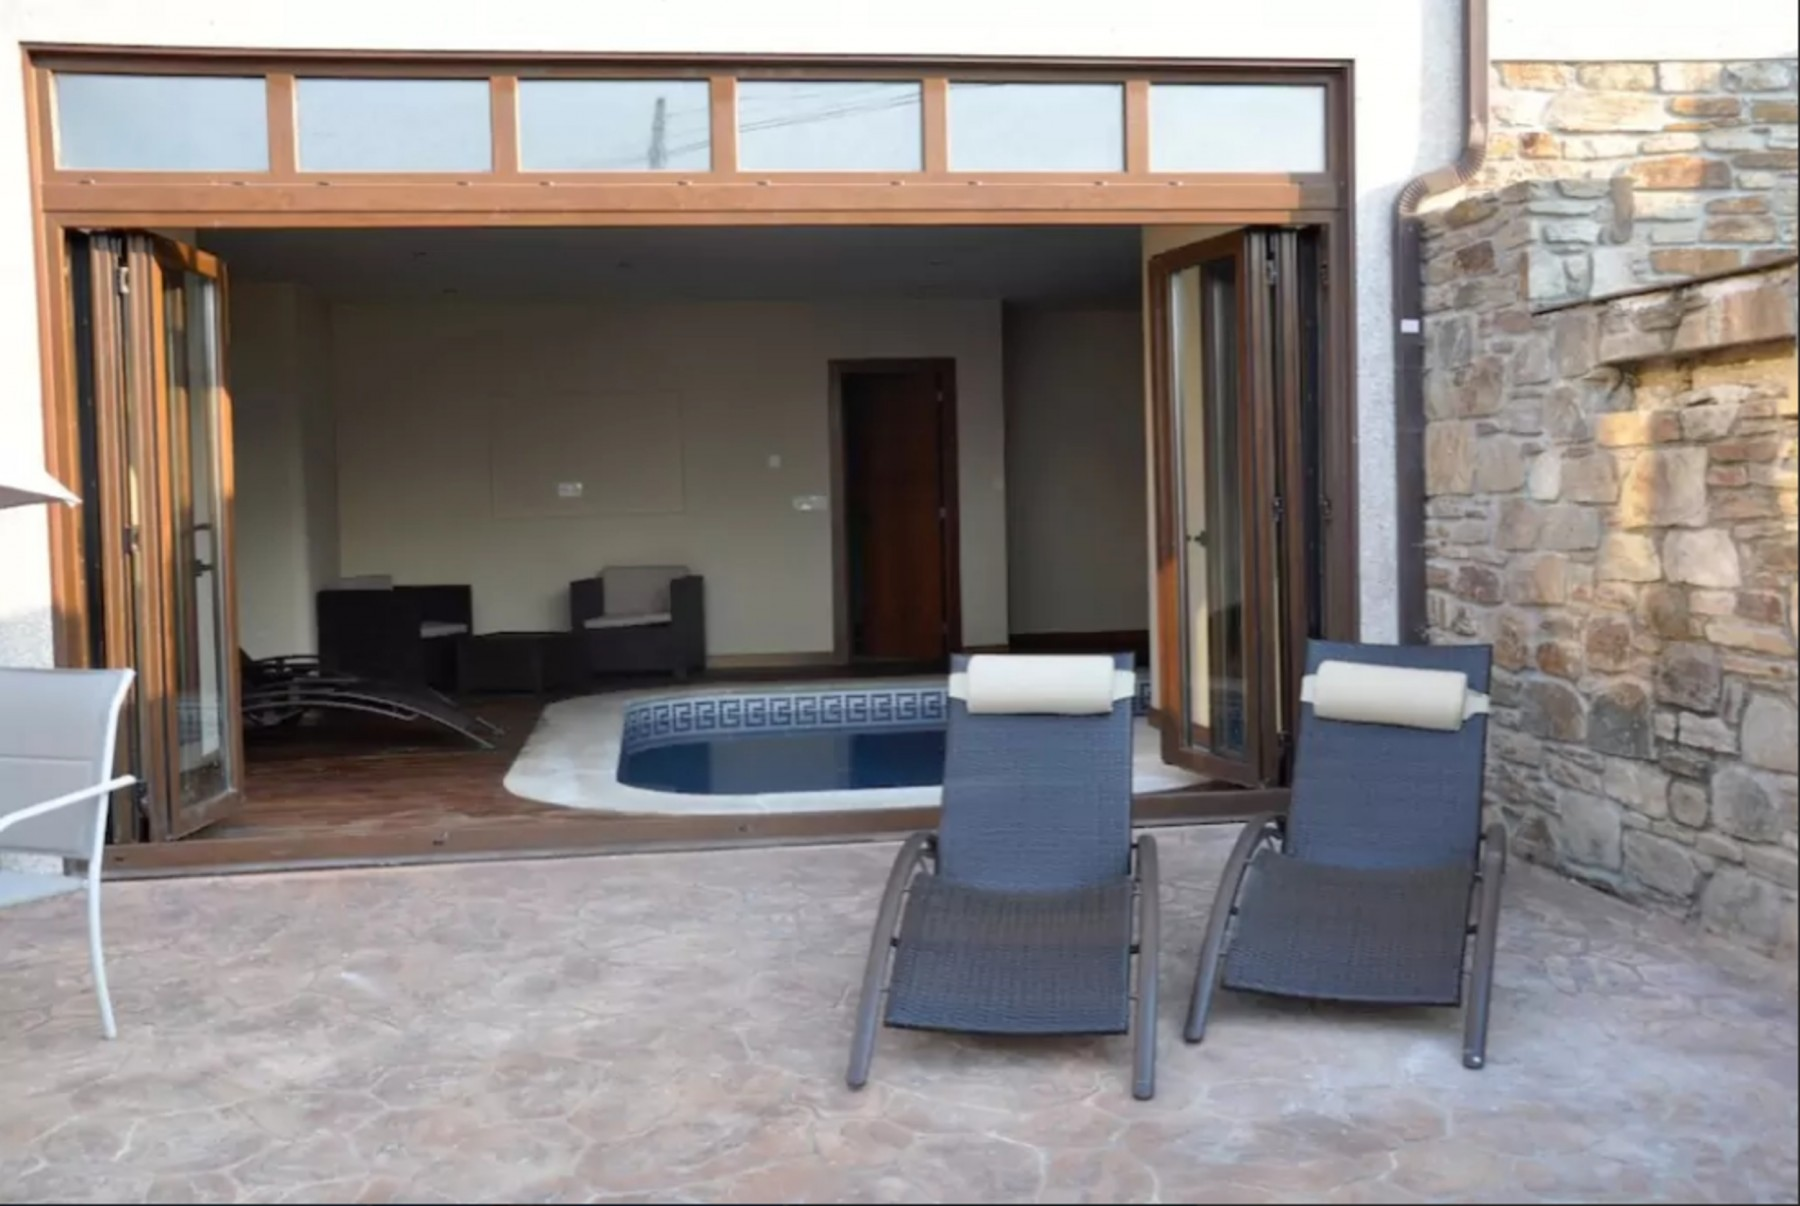 House - 3 Bedrooms with Pool - 103689